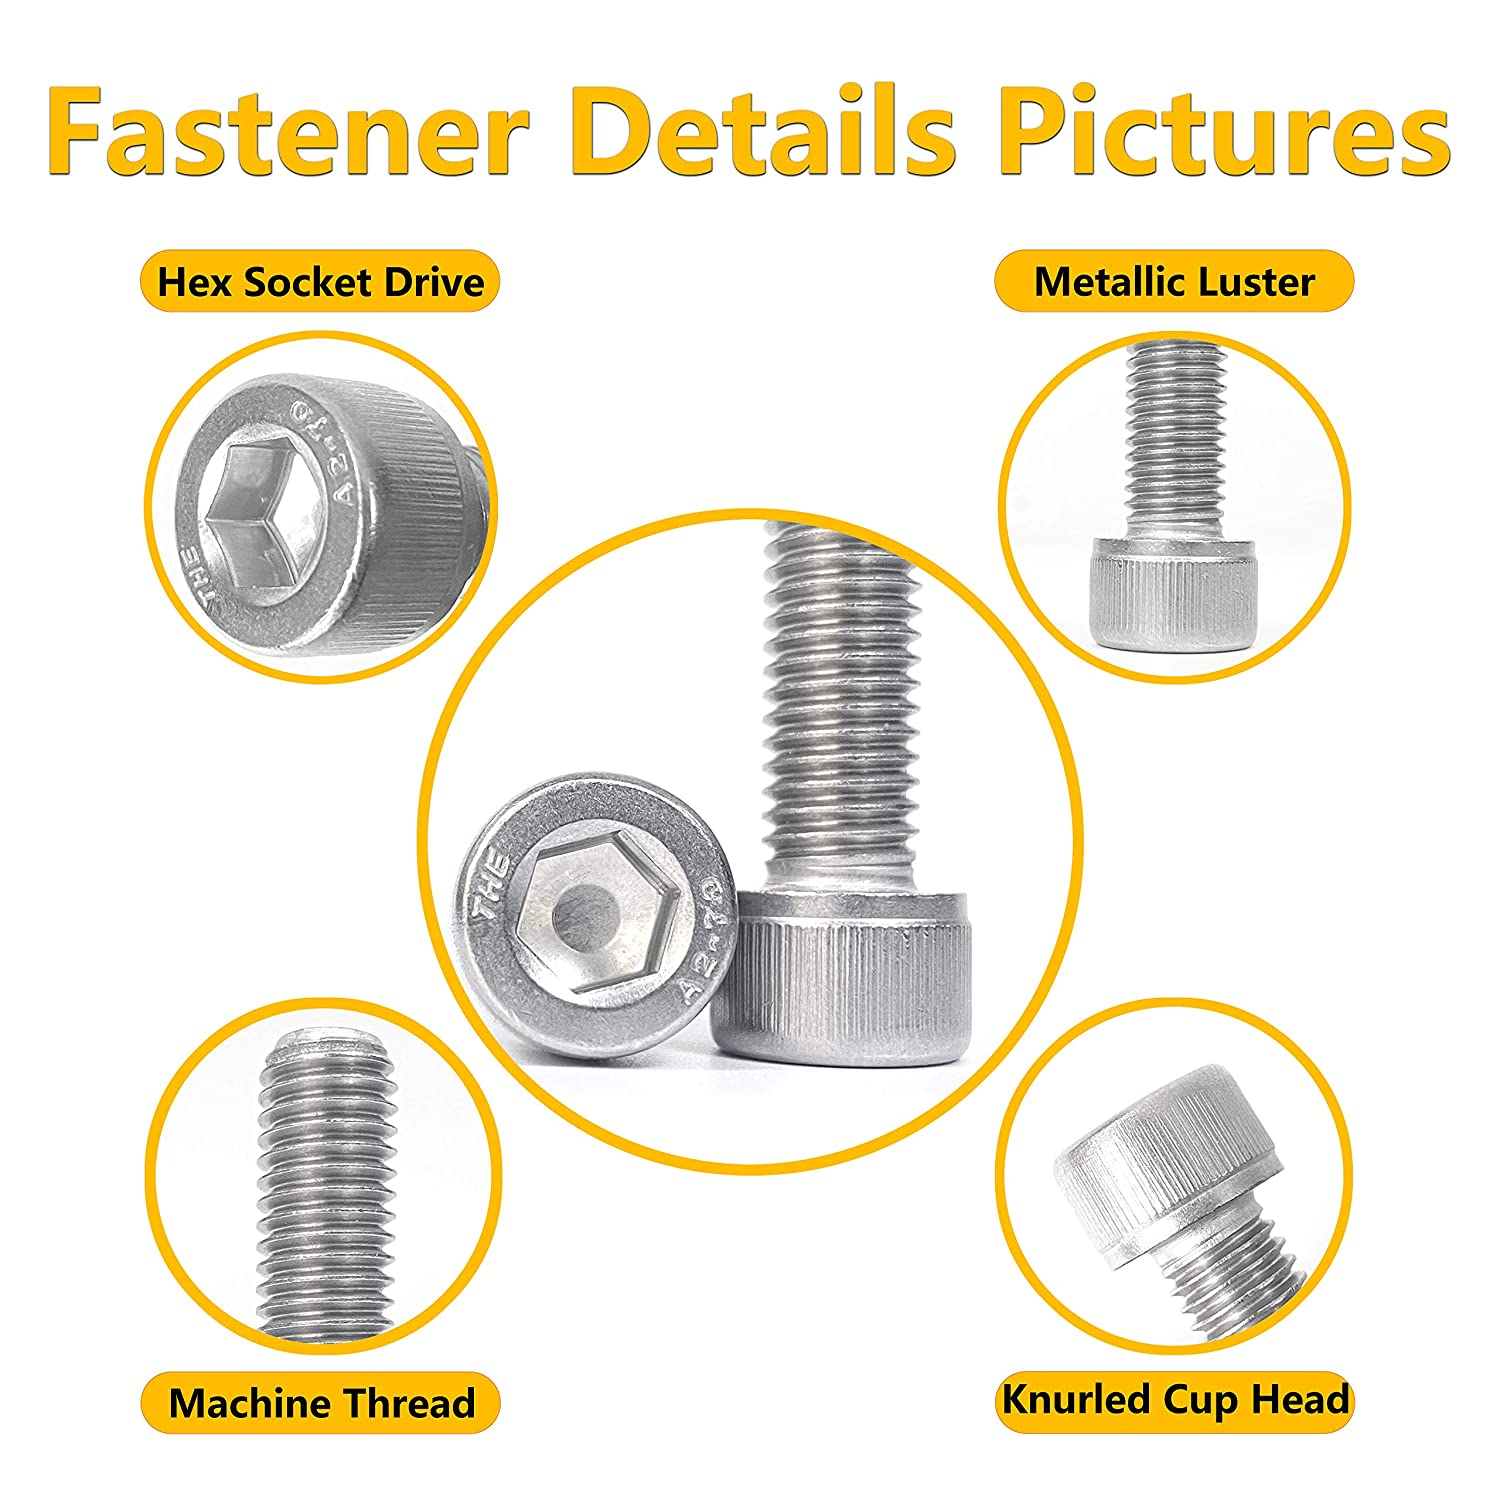 Fully Threaded with Allen Drive 100Pcs M4 x 6mm Socket Cap Head Screws Stainless Steel Machine Screw Metric Socket Bolt Hex Cap Head Bolts